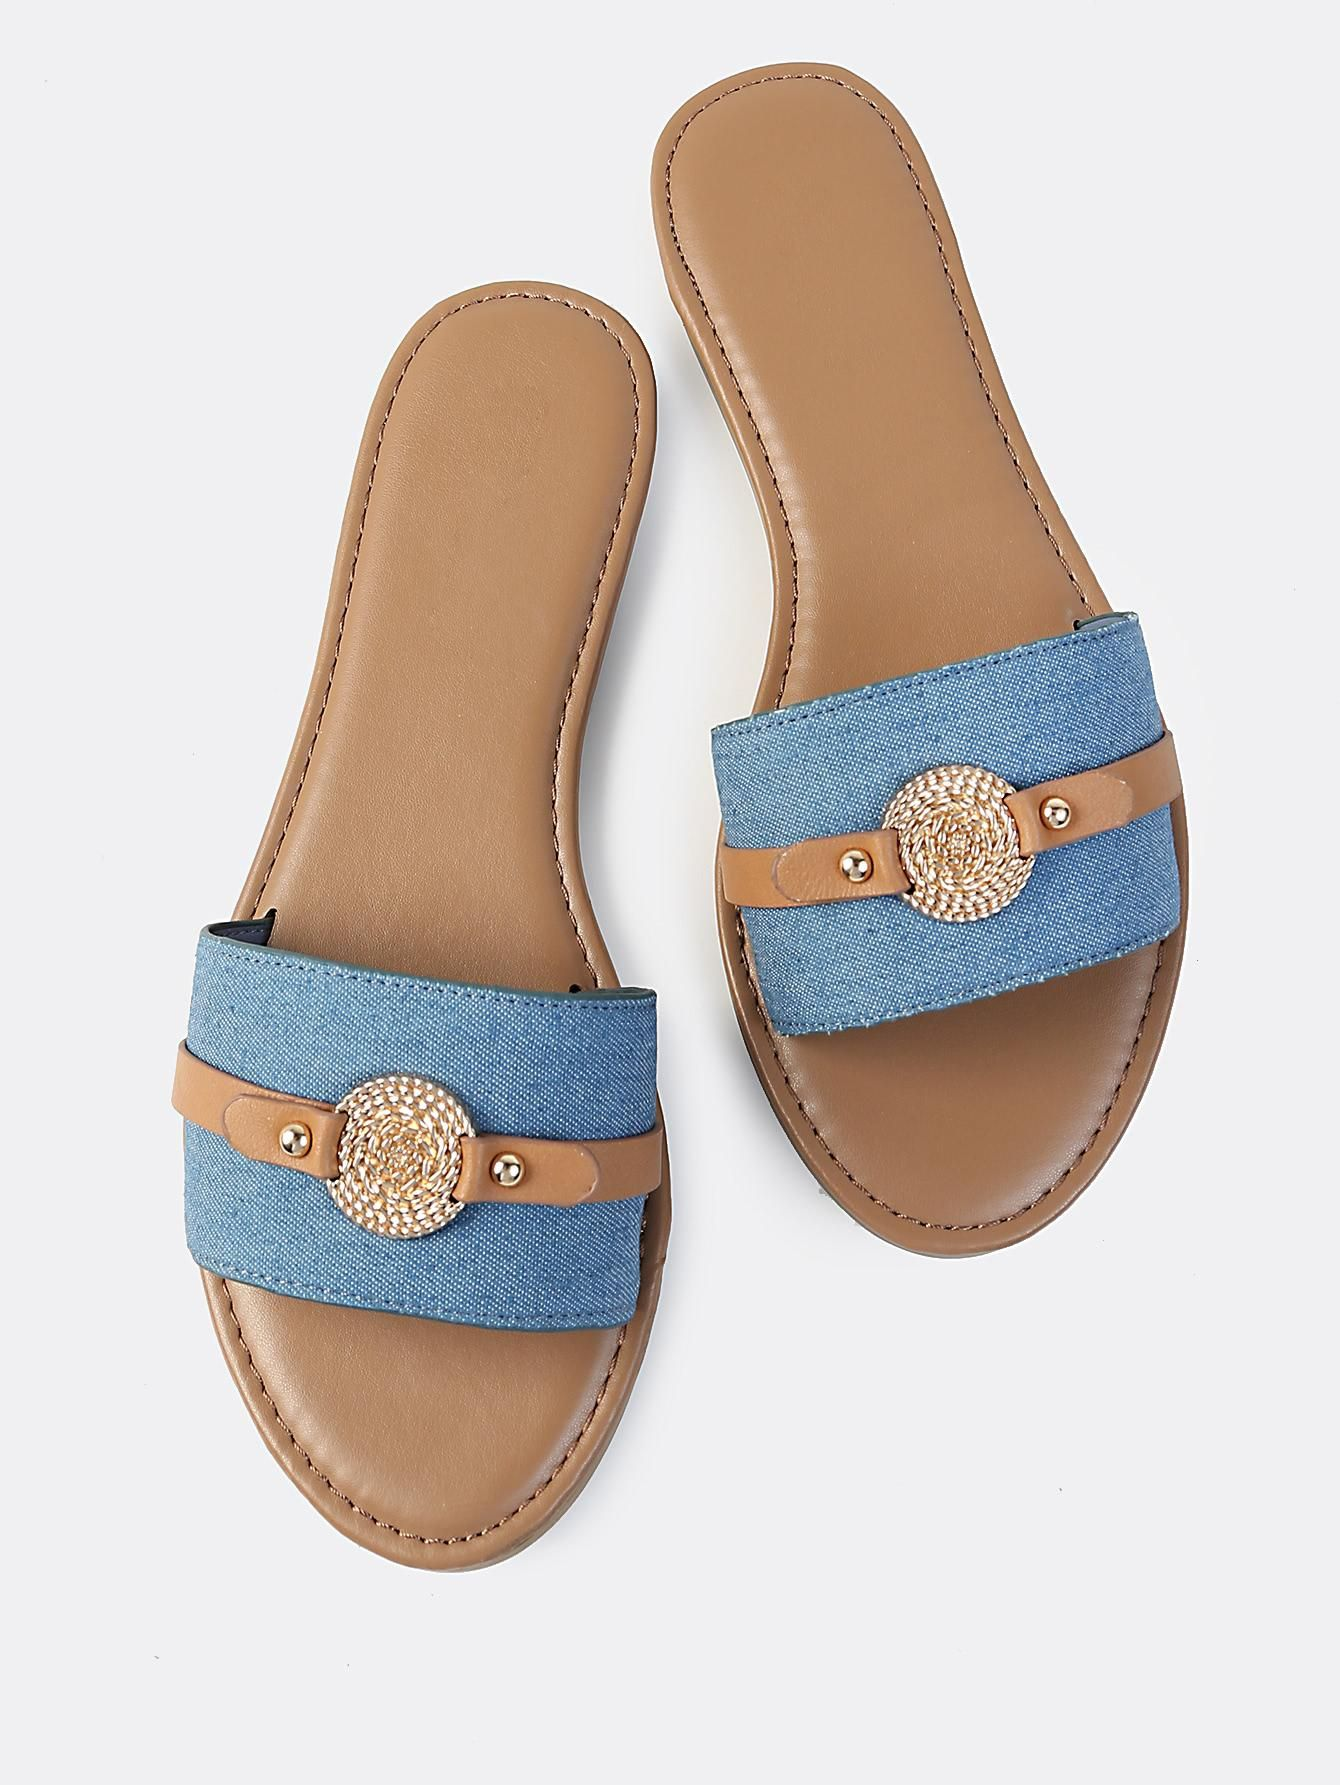 1f4d8c930ae985 MakeMeChic - MAKEMECHIC Single Band Denim Coin Slides DENIM - AdoreWe.com